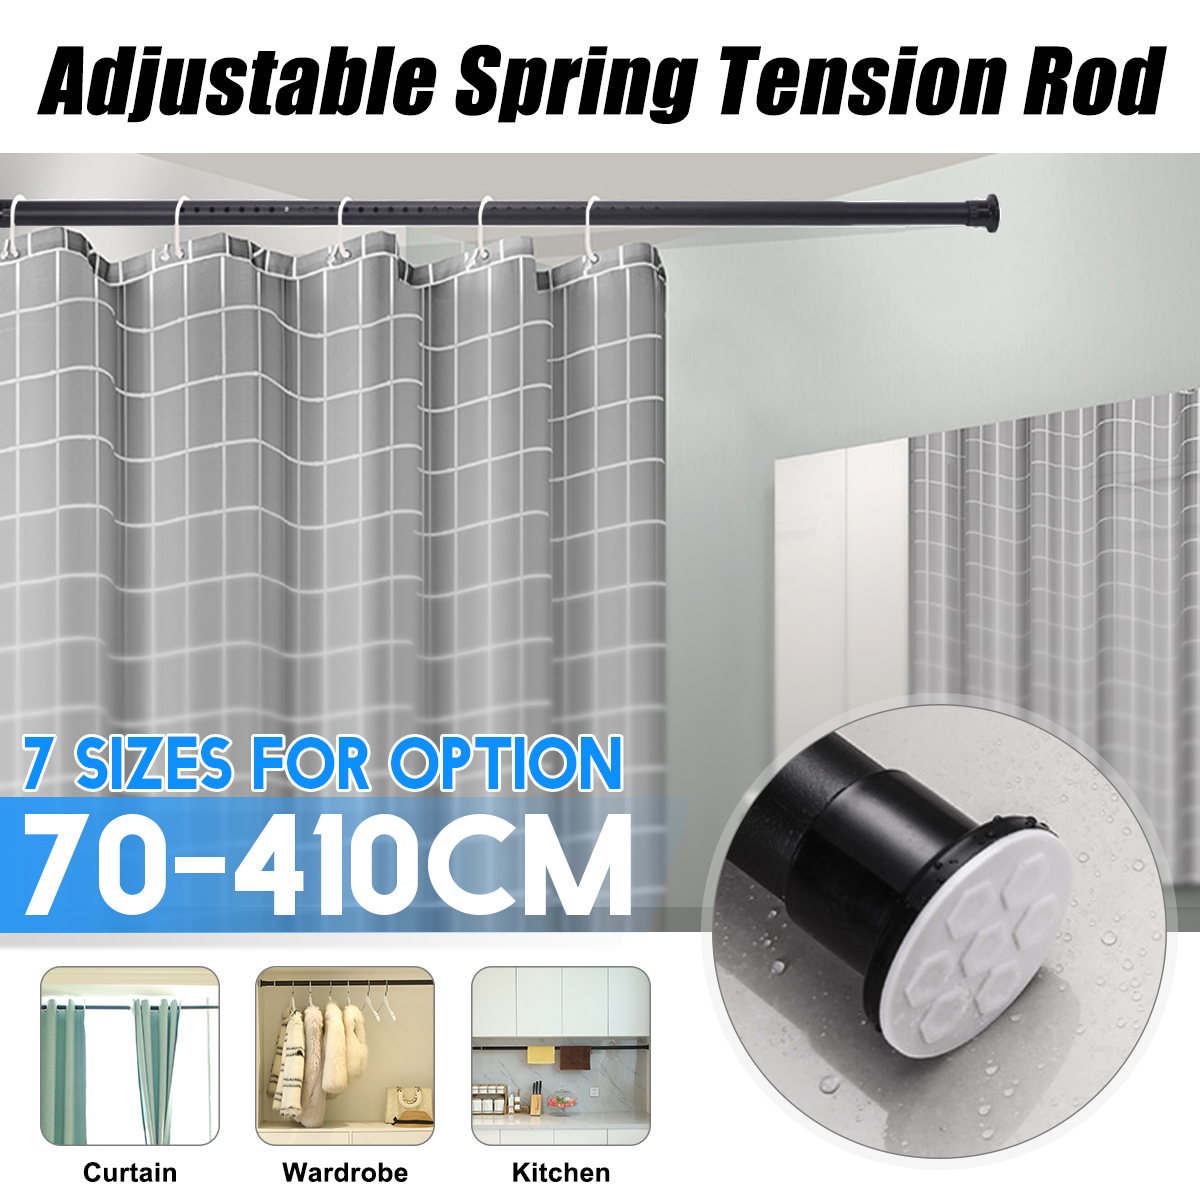 70CM to 410CM 7 sizes Shower Curtain Rod Adjustable Stainless Steel Spring Tension Rod Rail for Clothes / Towels / Curtains